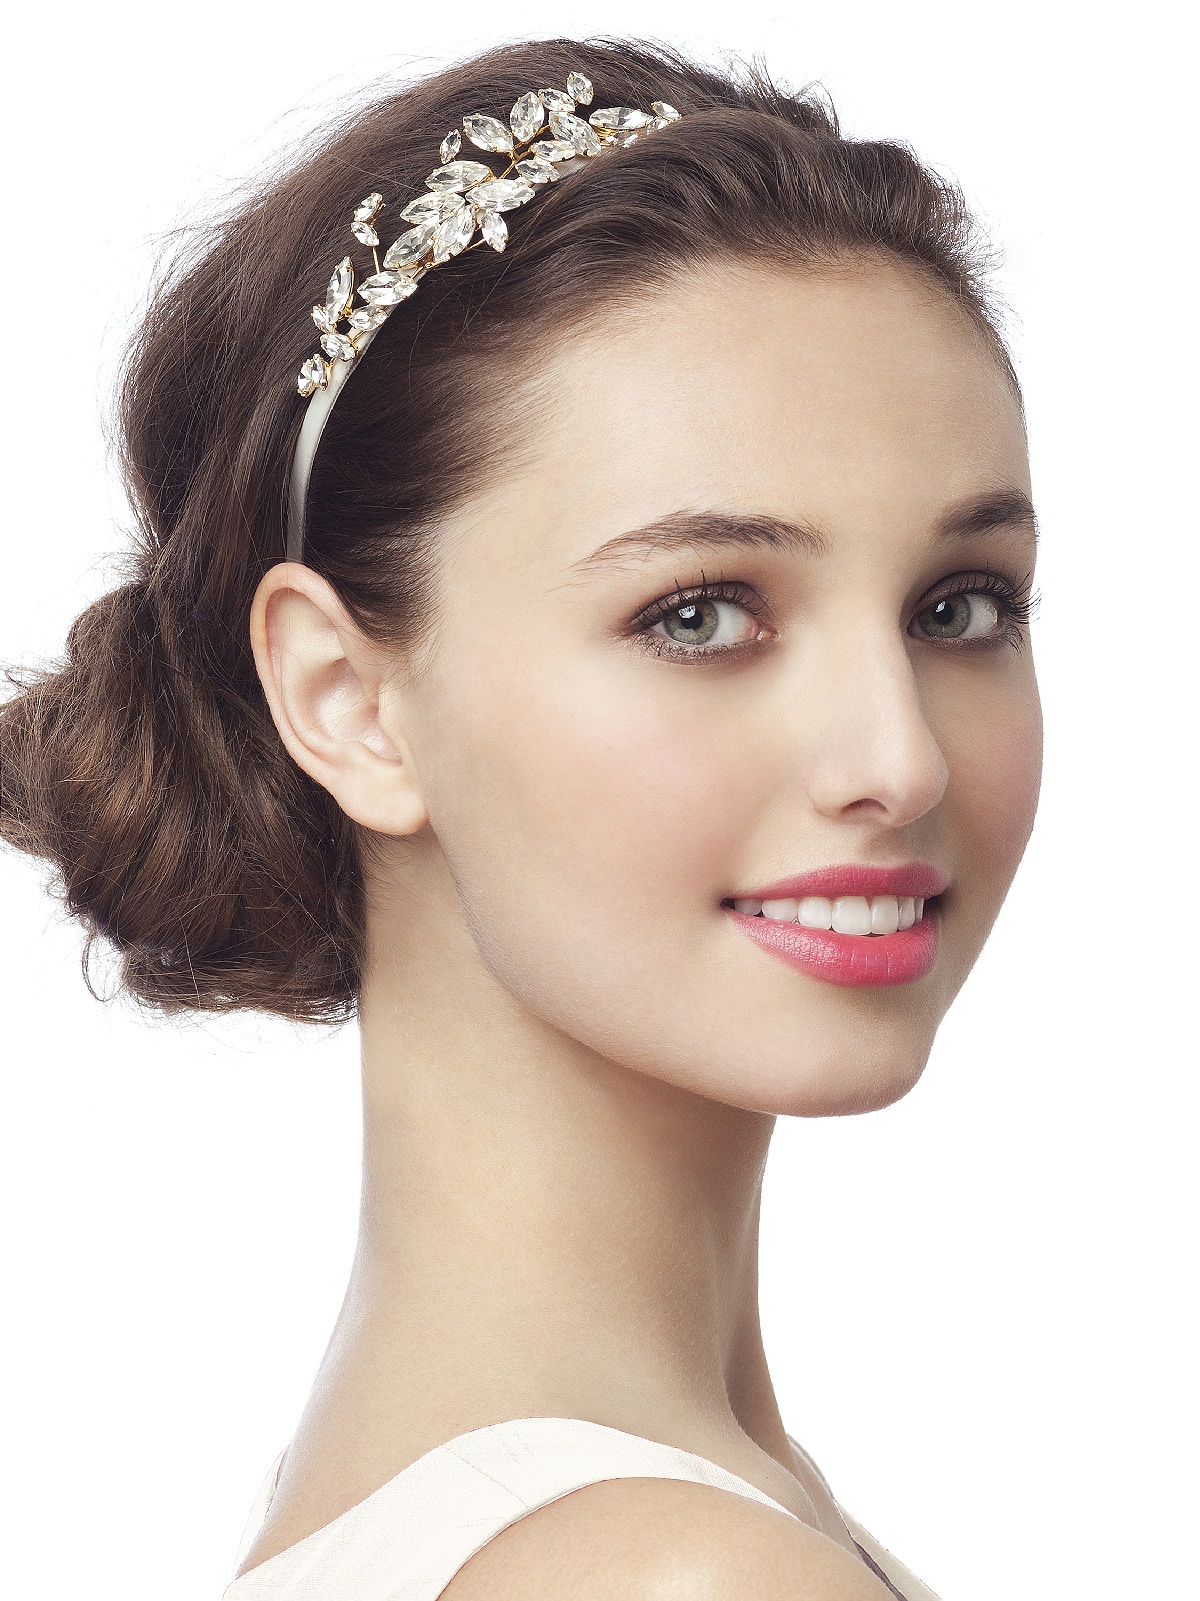 Everything you need to know about headpieces 19068f20 06fa 0133 5029 0ec273752cbd